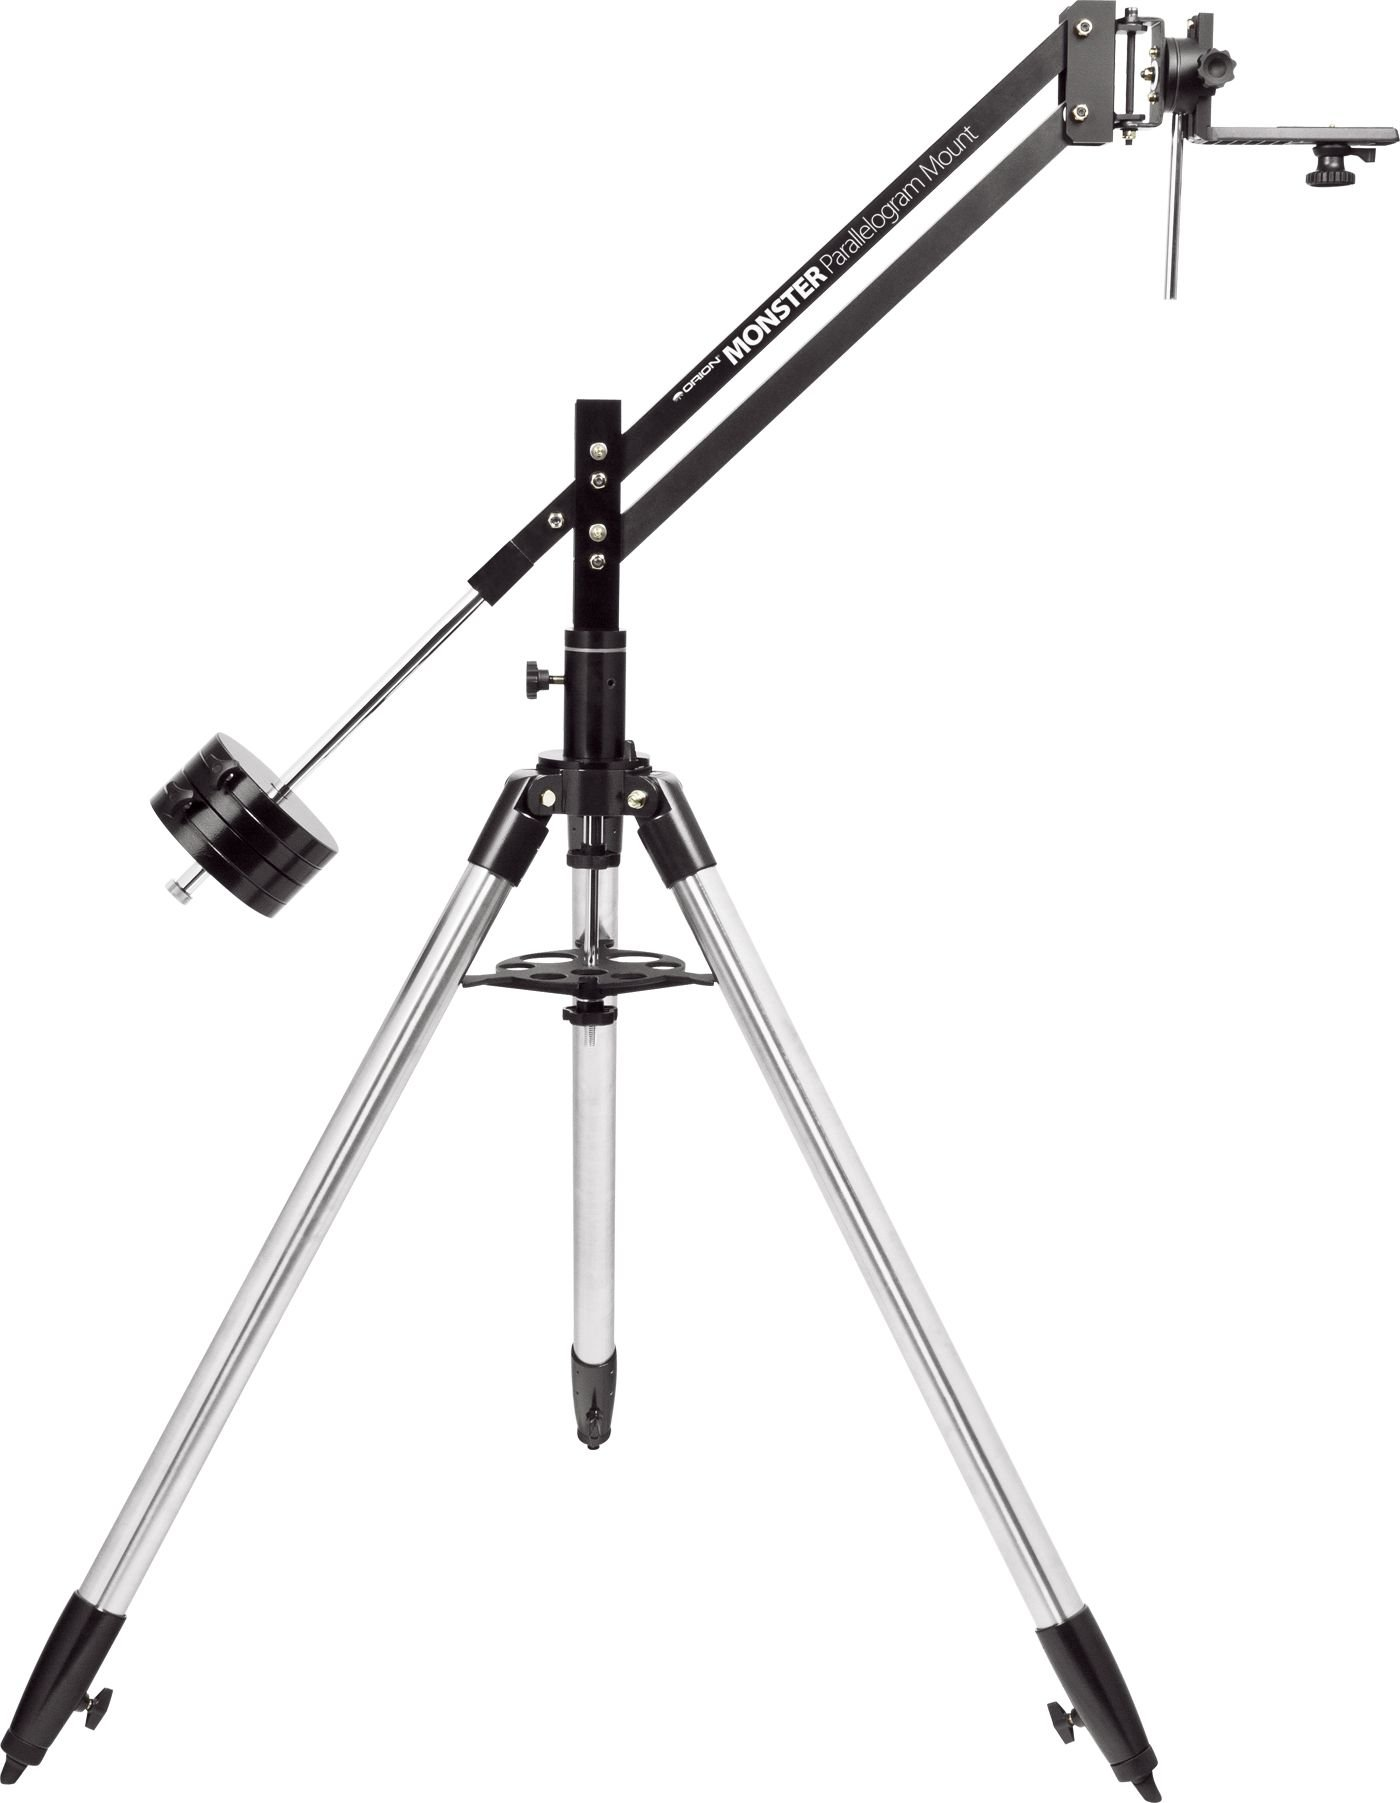 Orion 05752 Monster Parallelogram Binocular Mount & Tripod (Black)